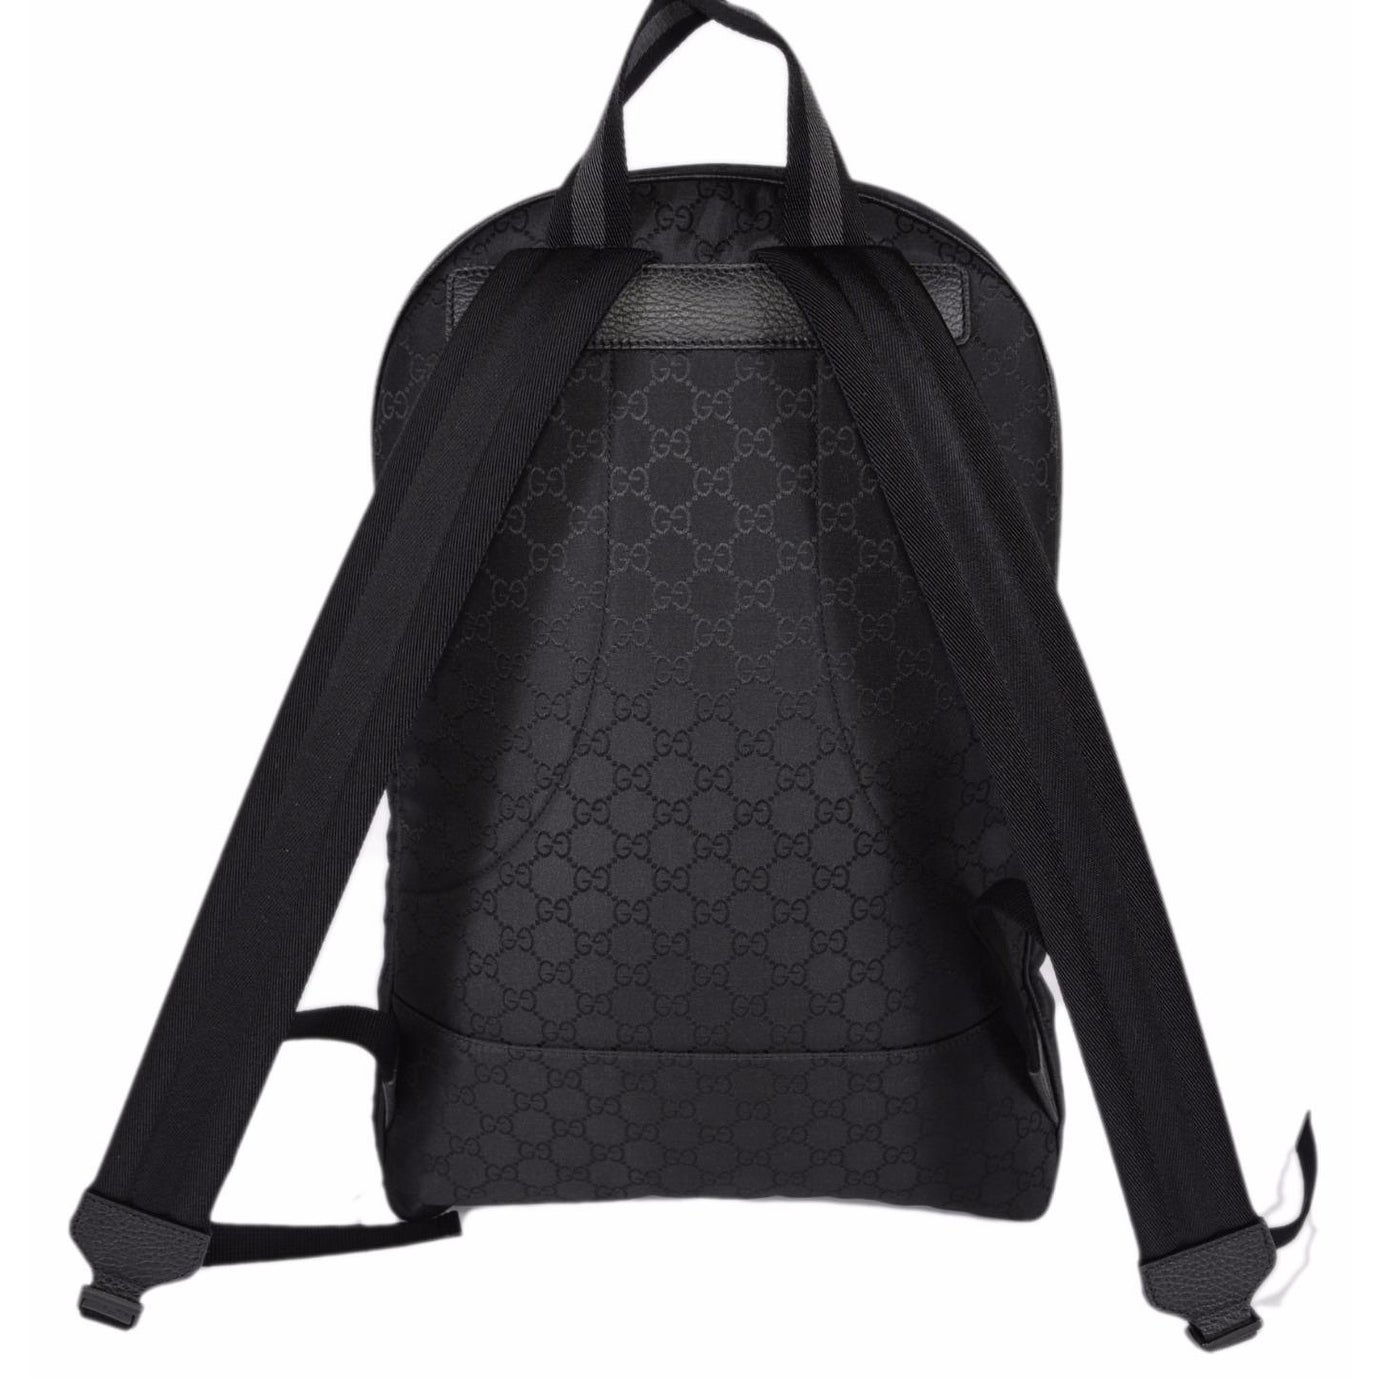 fe29fe2db2e Shop Gucci 449181 Black Nylon GG Guccissima Slim Backpack Rucksack Travel  Bag - Free Shipping Today - Overstock - 13818749